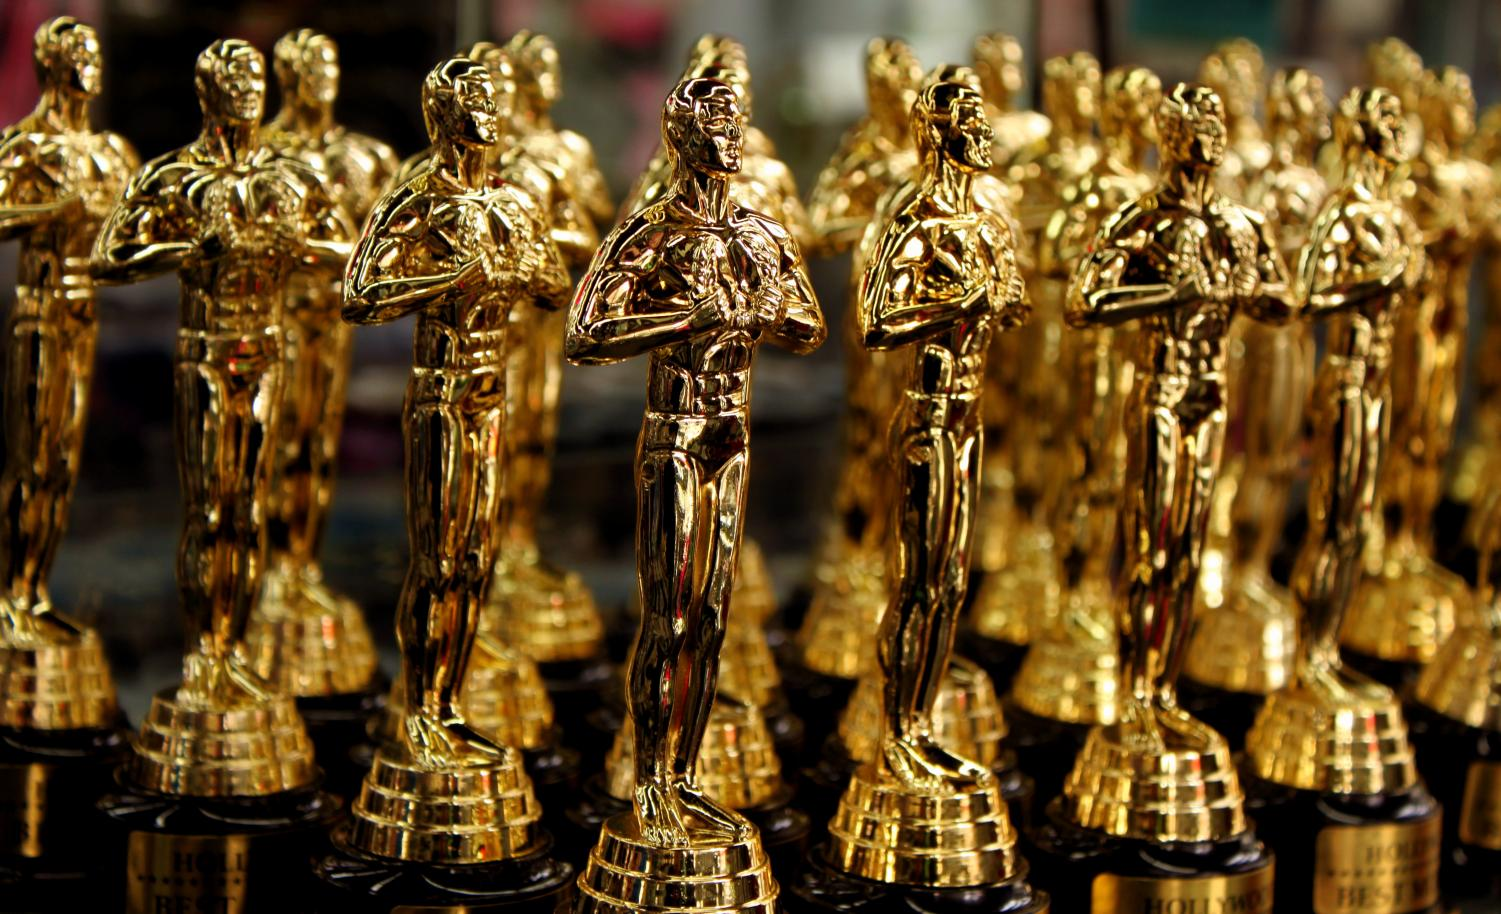 There are various notable contenders for Oscar winners this year.